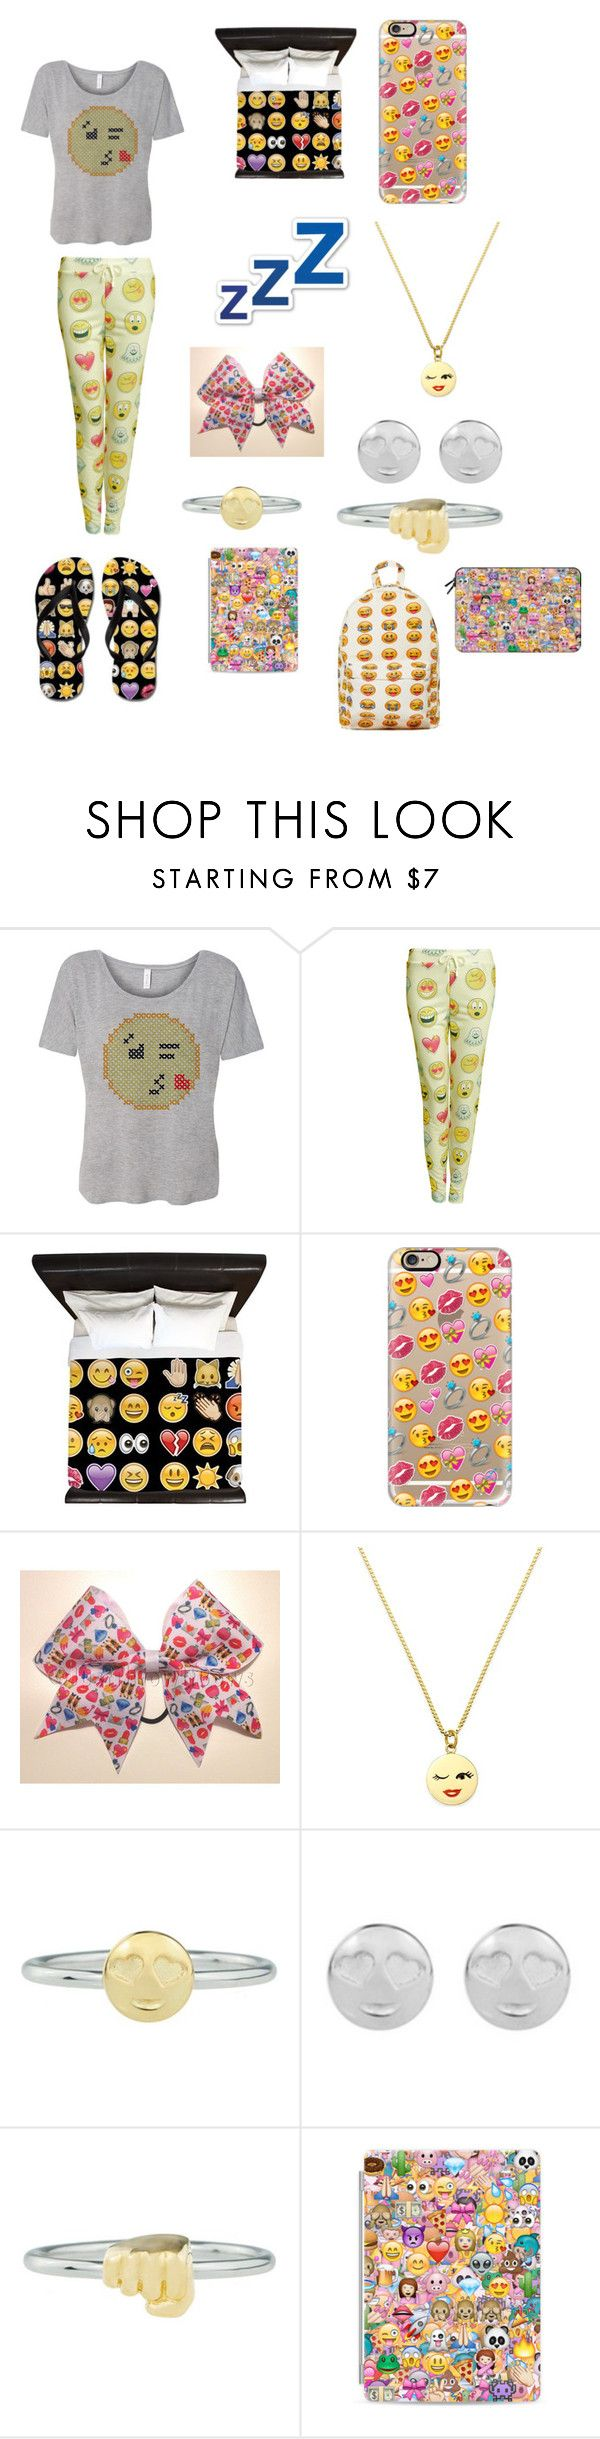 """""""Emoji Yaaaaas!"""" by ceeceegrant ❤ liked on Polyvore featuring Pilot, Casetify, Kate Spade and Rock 'N Rose"""